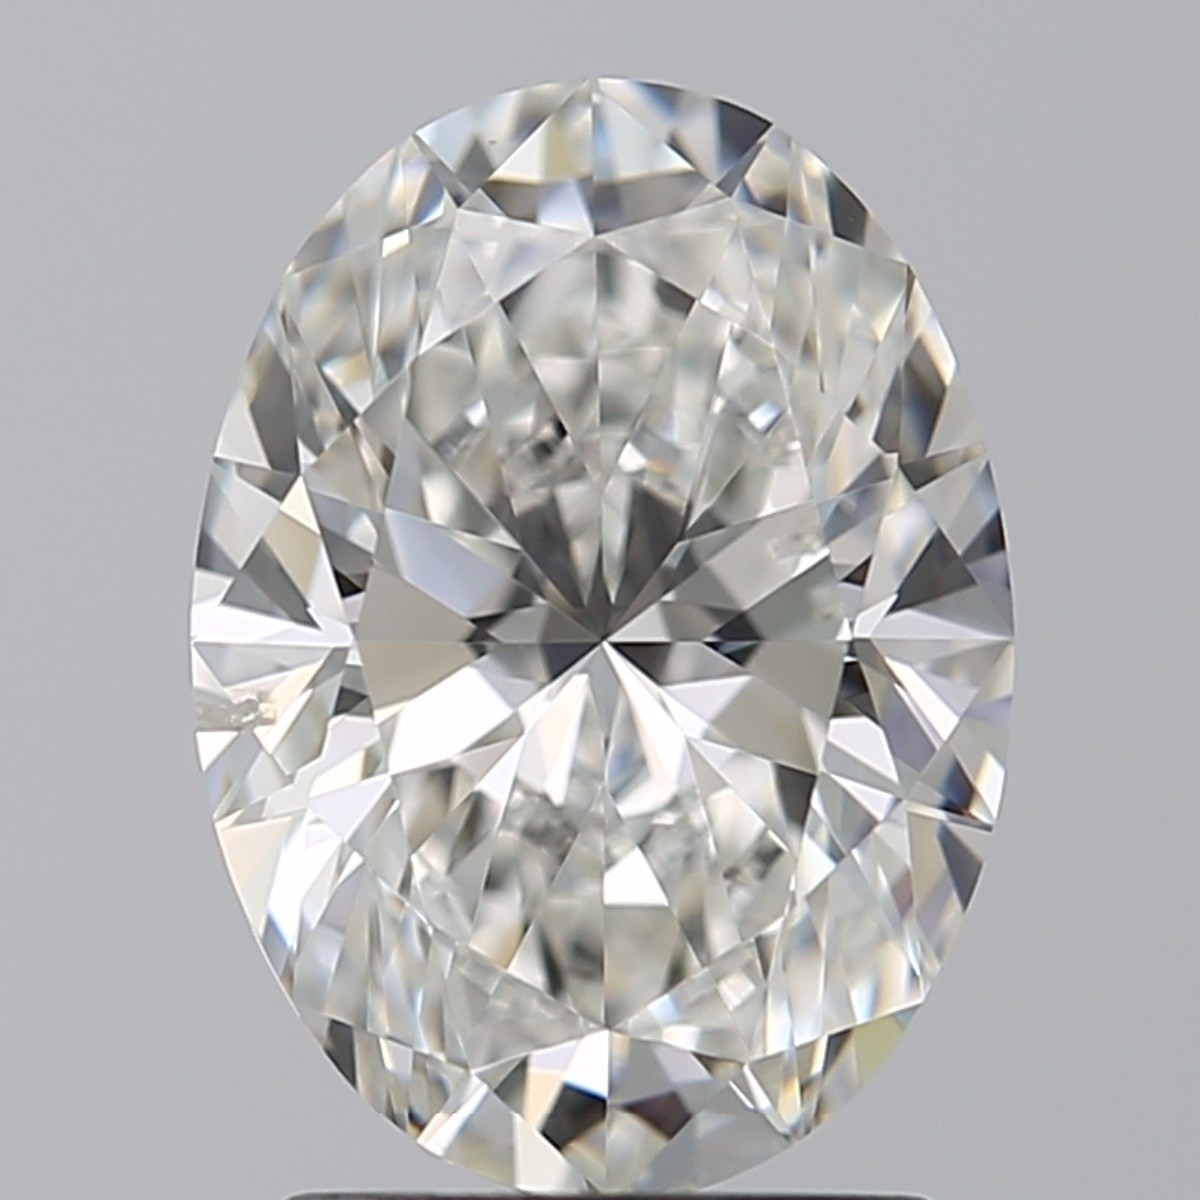 1.82 Carat Oval Diamond (H/SI1)